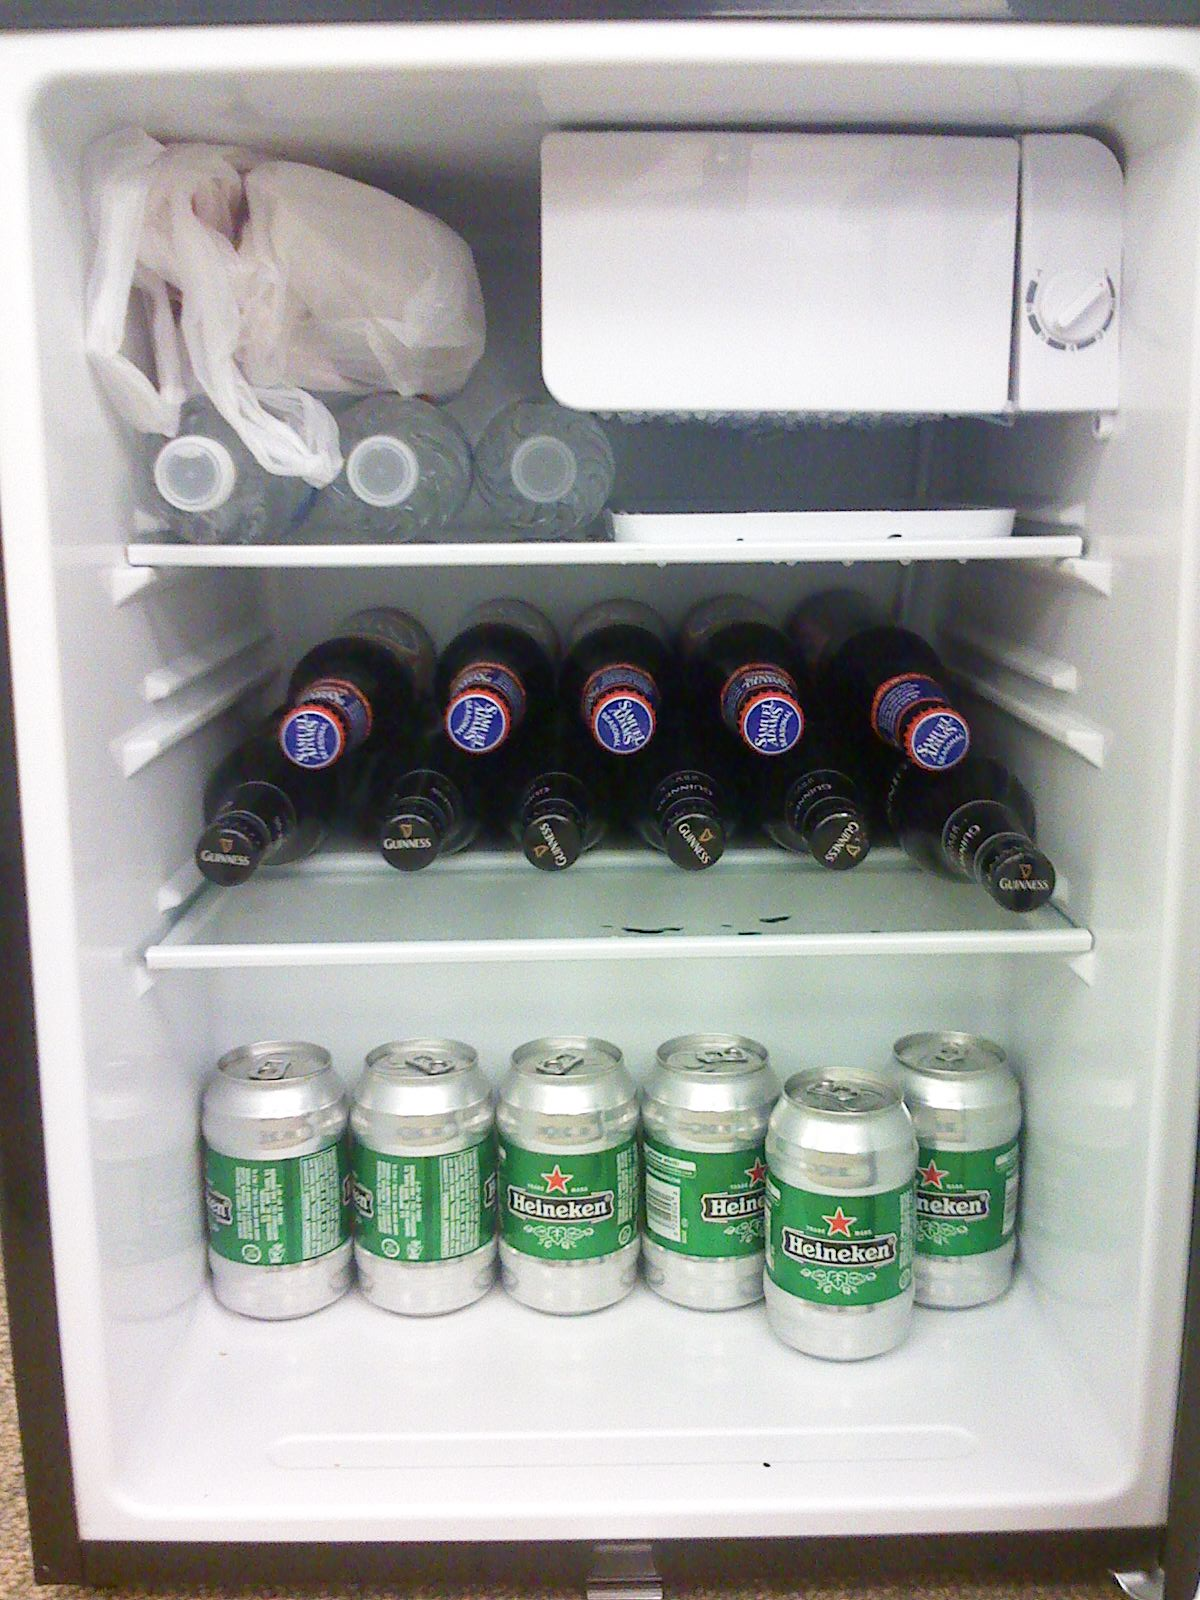 Beer fridge at work